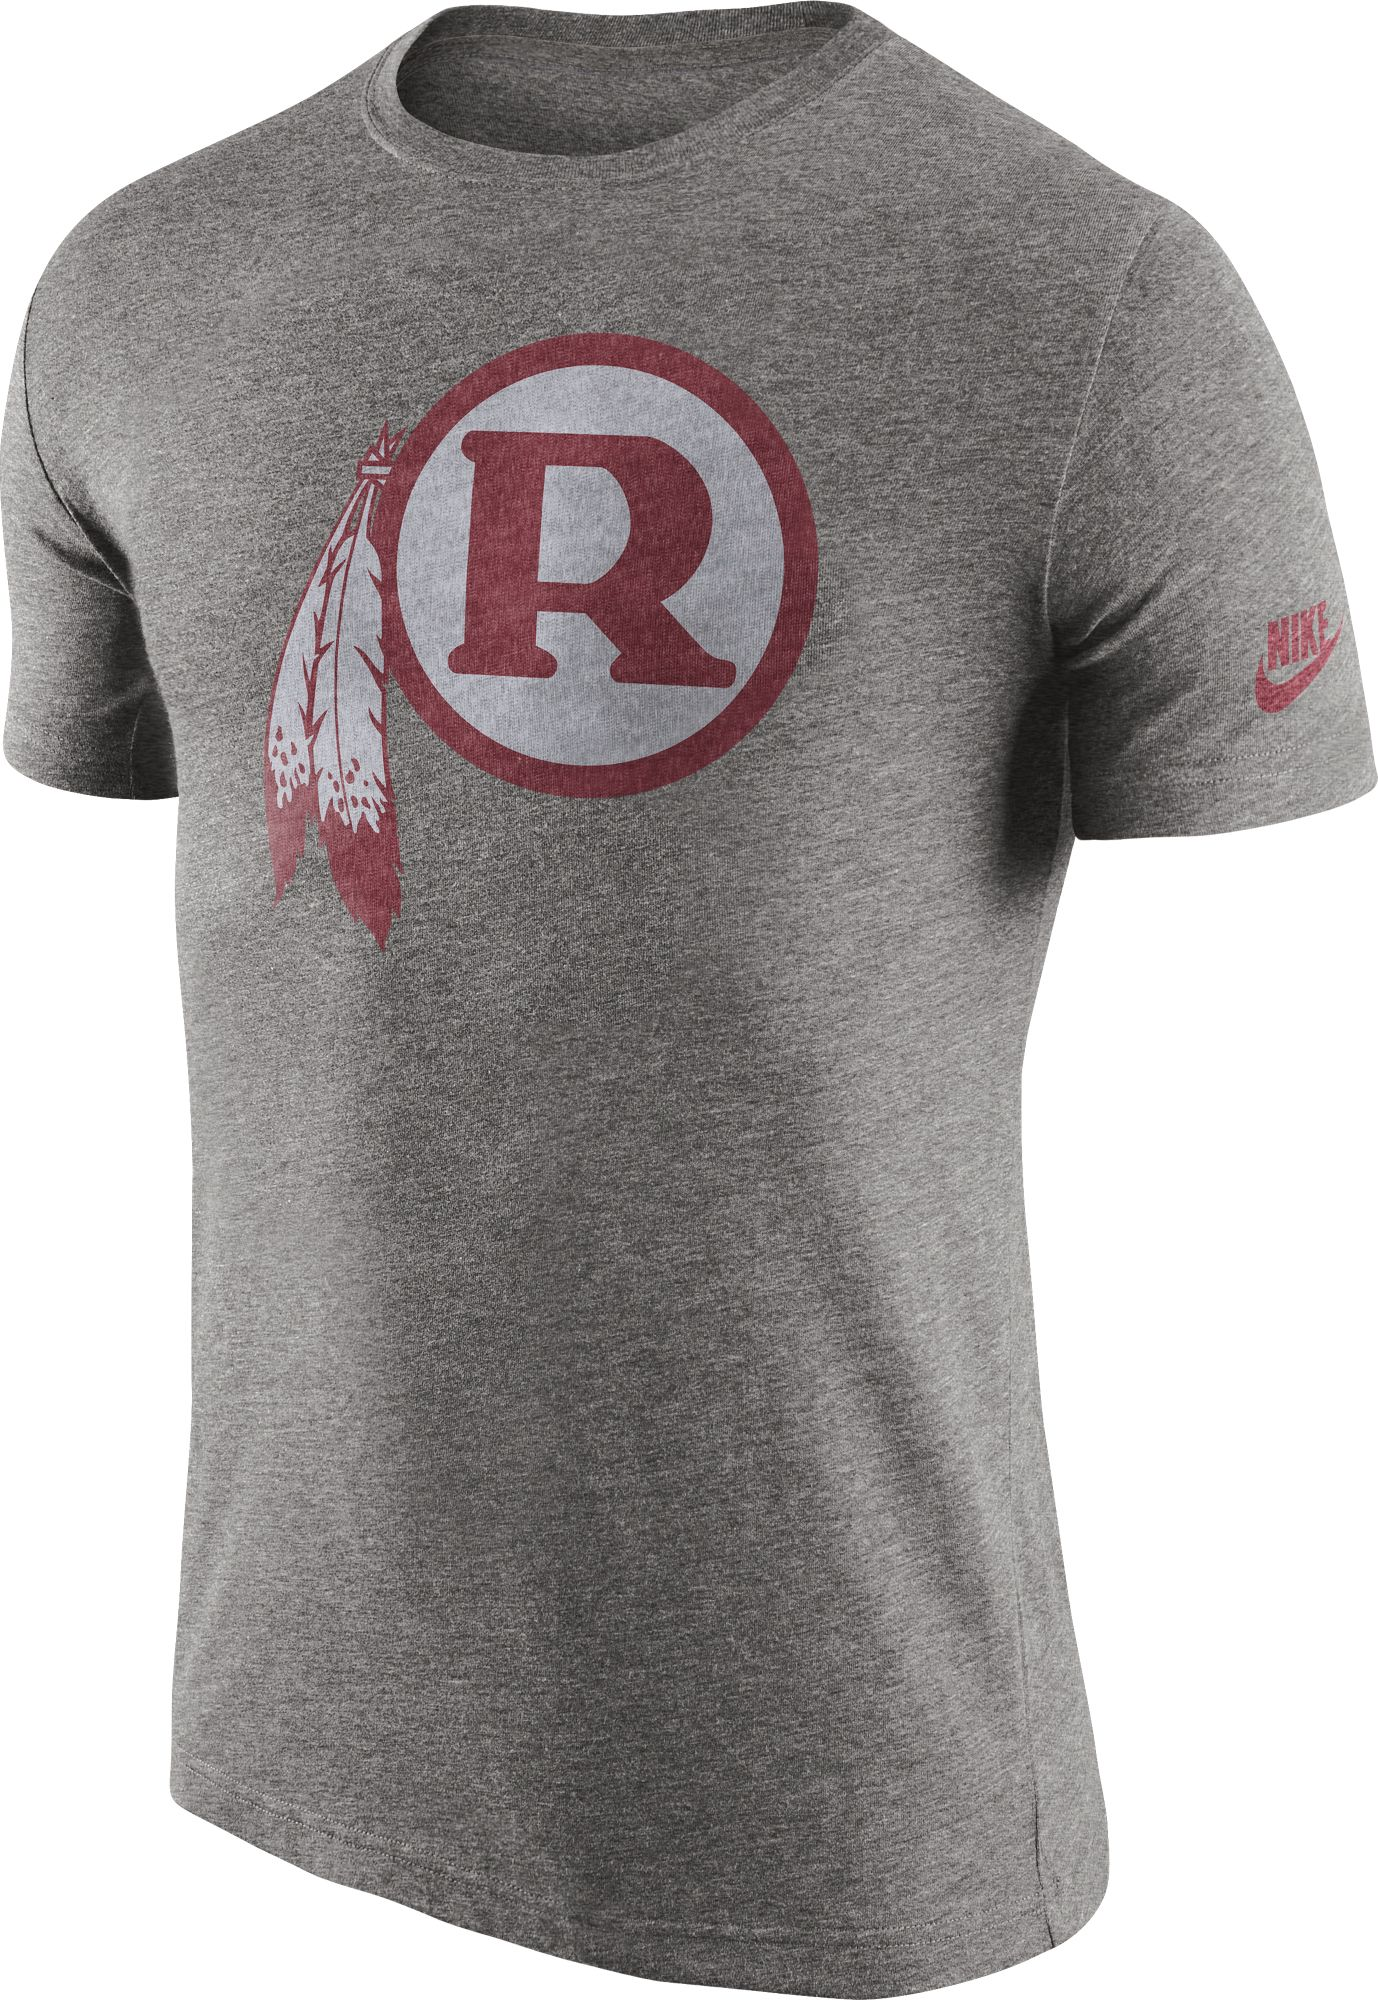 grey redskins jersey